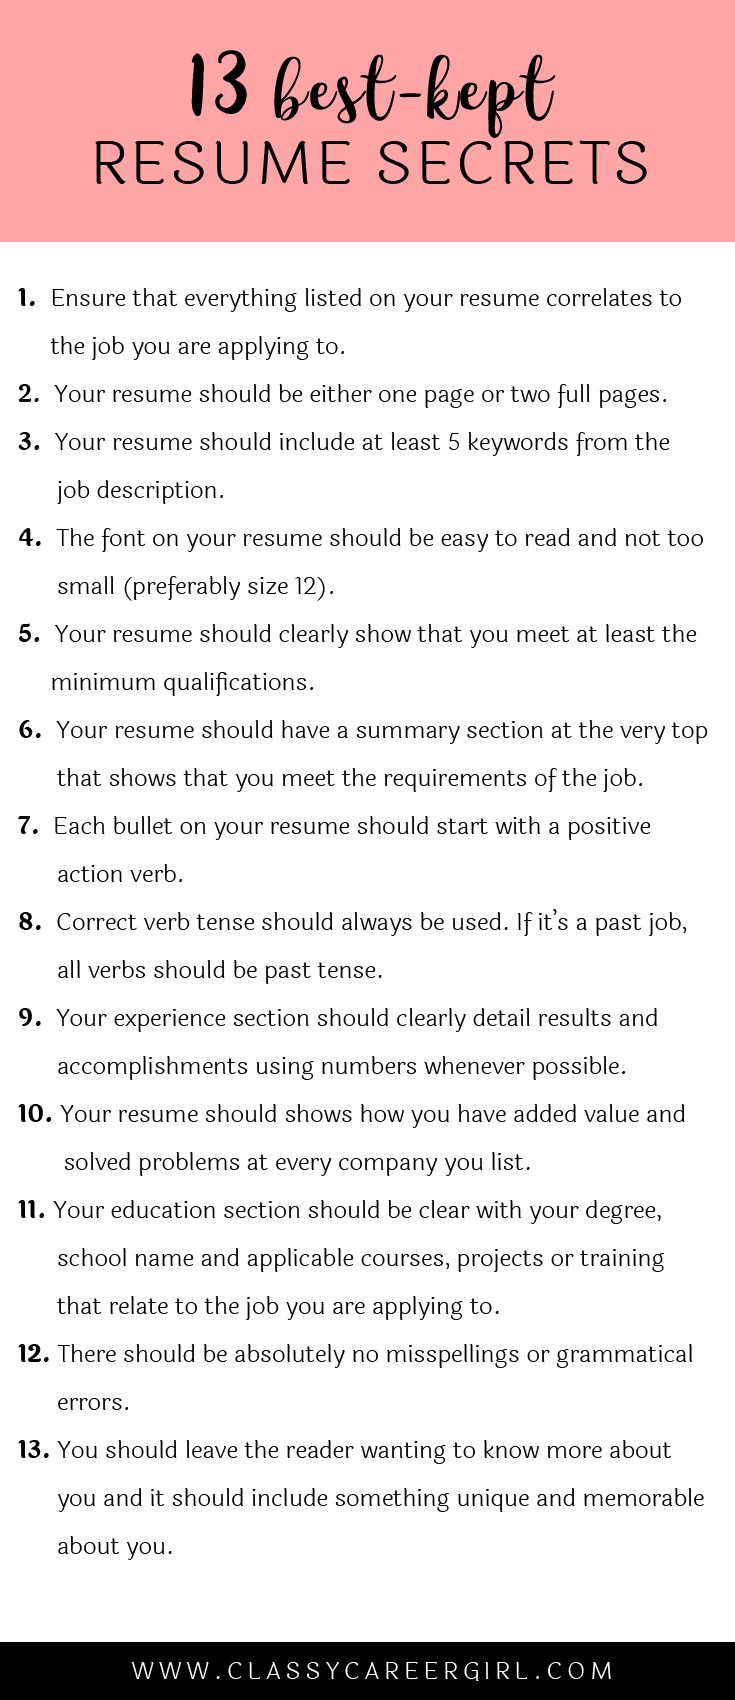 Opposenewapstandardsus  Marvellous  Ideas About Resume On Pinterest  Cv Format Resume Cv And  With Interesting Some Hiring Managers Will Toss Your Resume Out If You Dont Know These  With Astounding Jobs Resume Also Hair Stylist Resume Objective In Addition Resume For Kids And Intern Resume Examples As Well As Resume Marketing Additionally Communications Specialist Resume From Pinterestcom With Opposenewapstandardsus  Interesting  Ideas About Resume On Pinterest  Cv Format Resume Cv And  With Astounding Some Hiring Managers Will Toss Your Resume Out If You Dont Know These  And Marvellous Jobs Resume Also Hair Stylist Resume Objective In Addition Resume For Kids From Pinterestcom